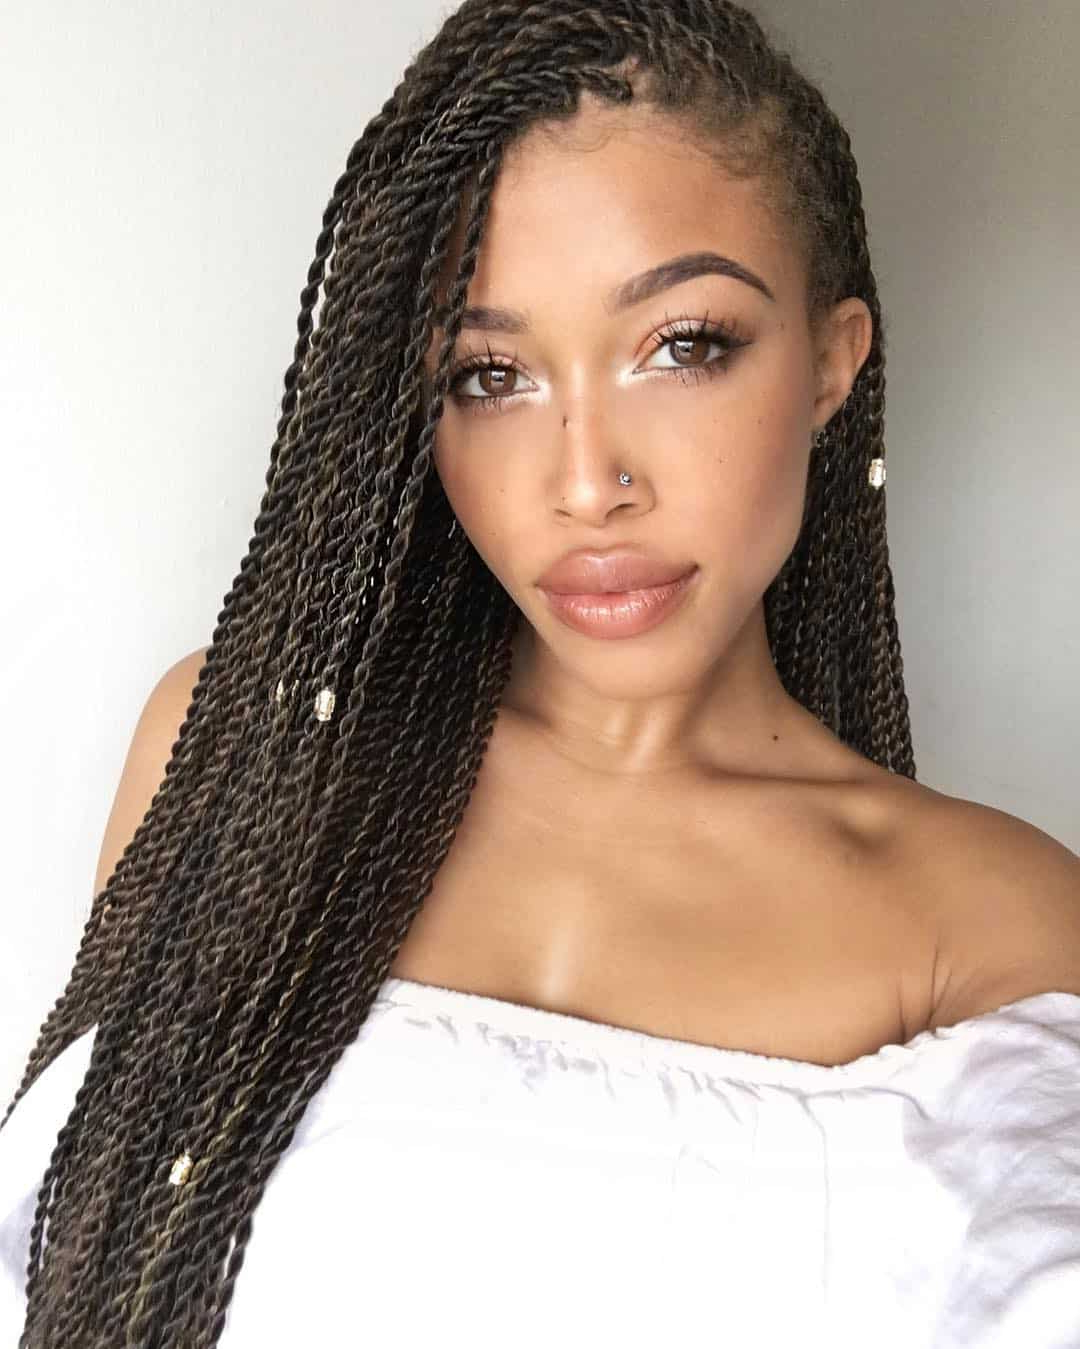 Recent Stylishly Swept Back Braid Hairstyles Intended For 29 Magnificent Micro Braid Hairstyles For The Next Season (View 15 of 20)